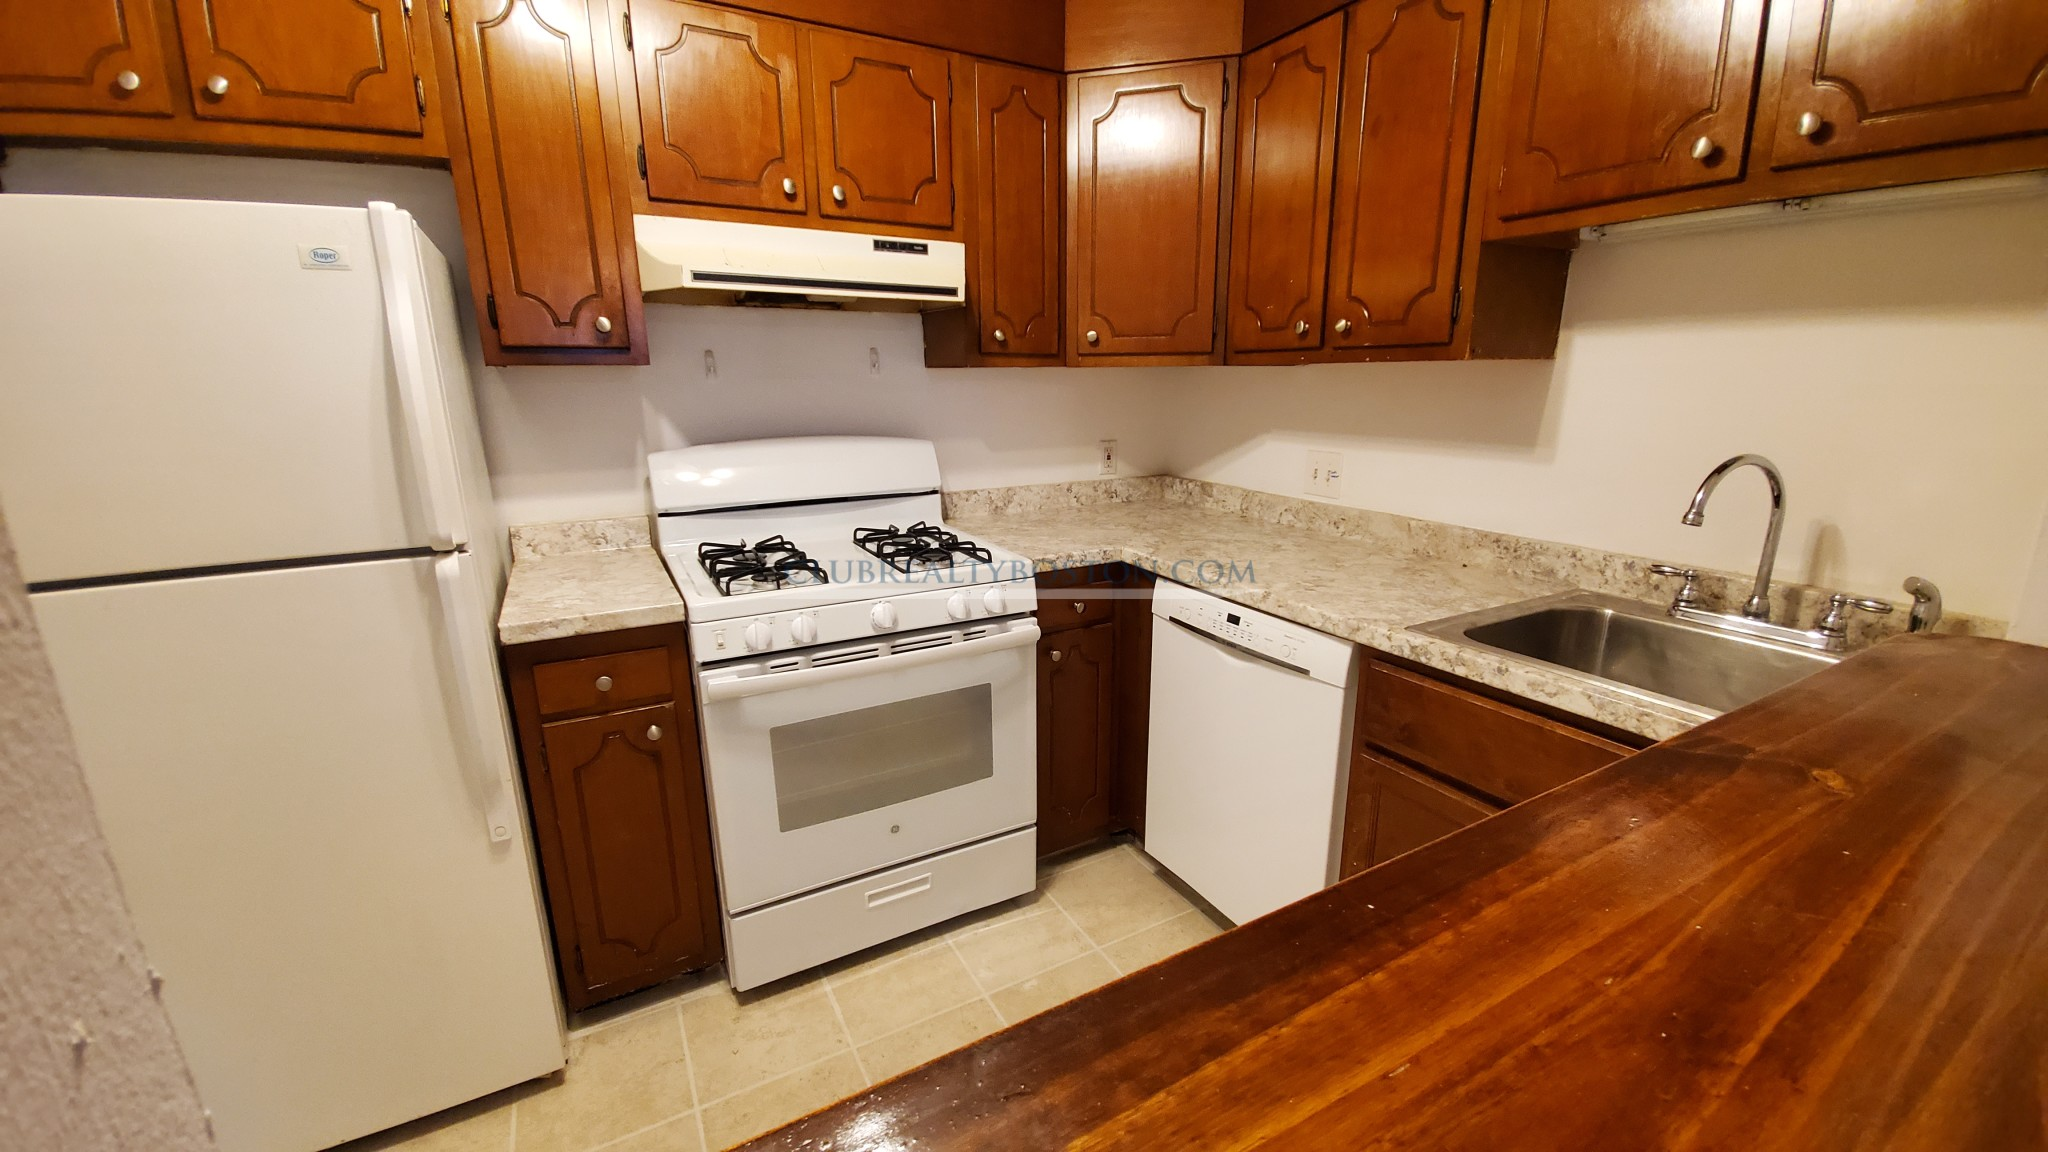 Room in 2 bed, Heat/HW, + Off street parking AVAIL Huge XL rooms, A/C